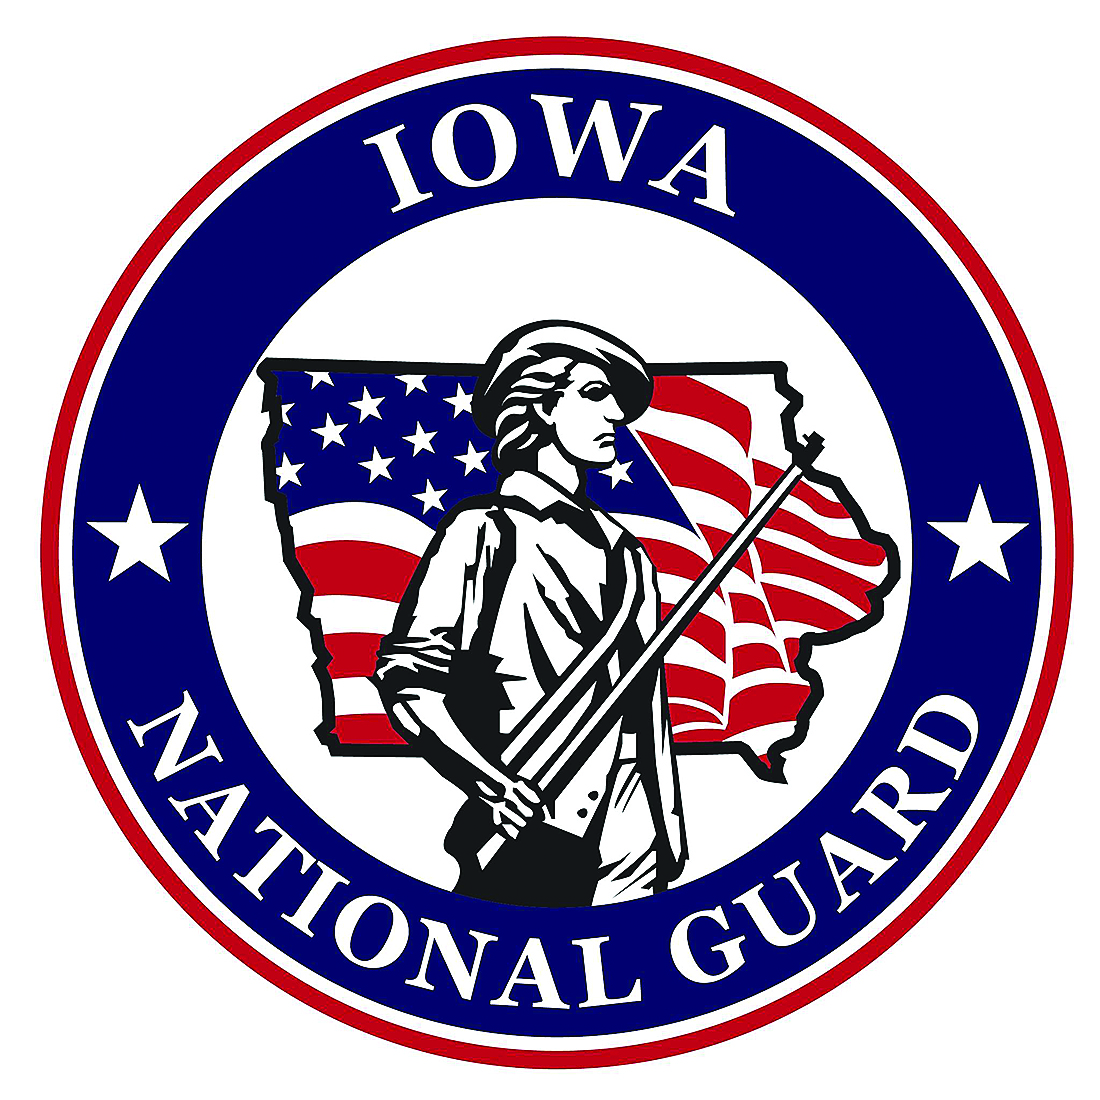 National Guard deployments, including from Charles City armory, to go forward